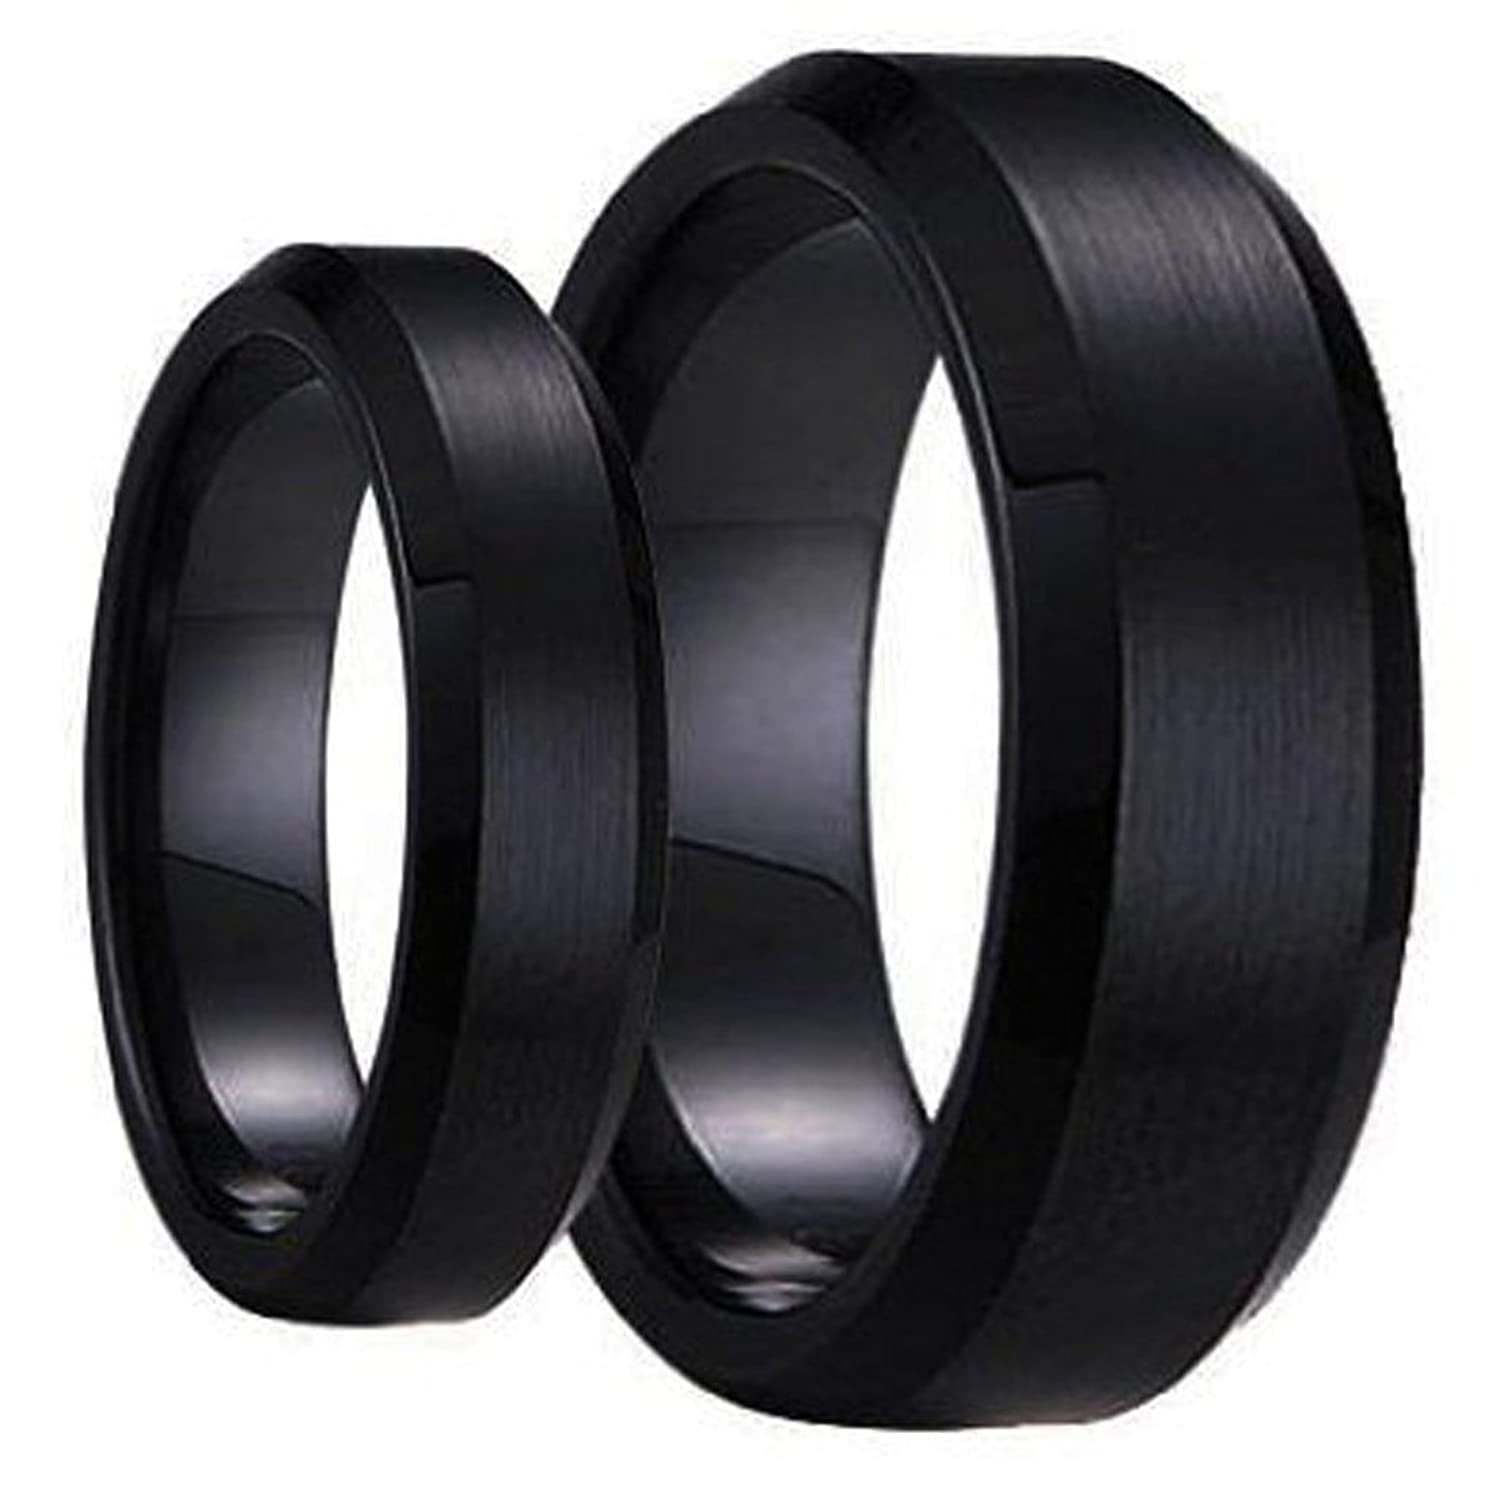 amazoncom swinger black ring set his hers matching 6mm 8mm black brushed center with polished edge tungsten carbide wedding band set jewelry - Black Wedding Ring Set